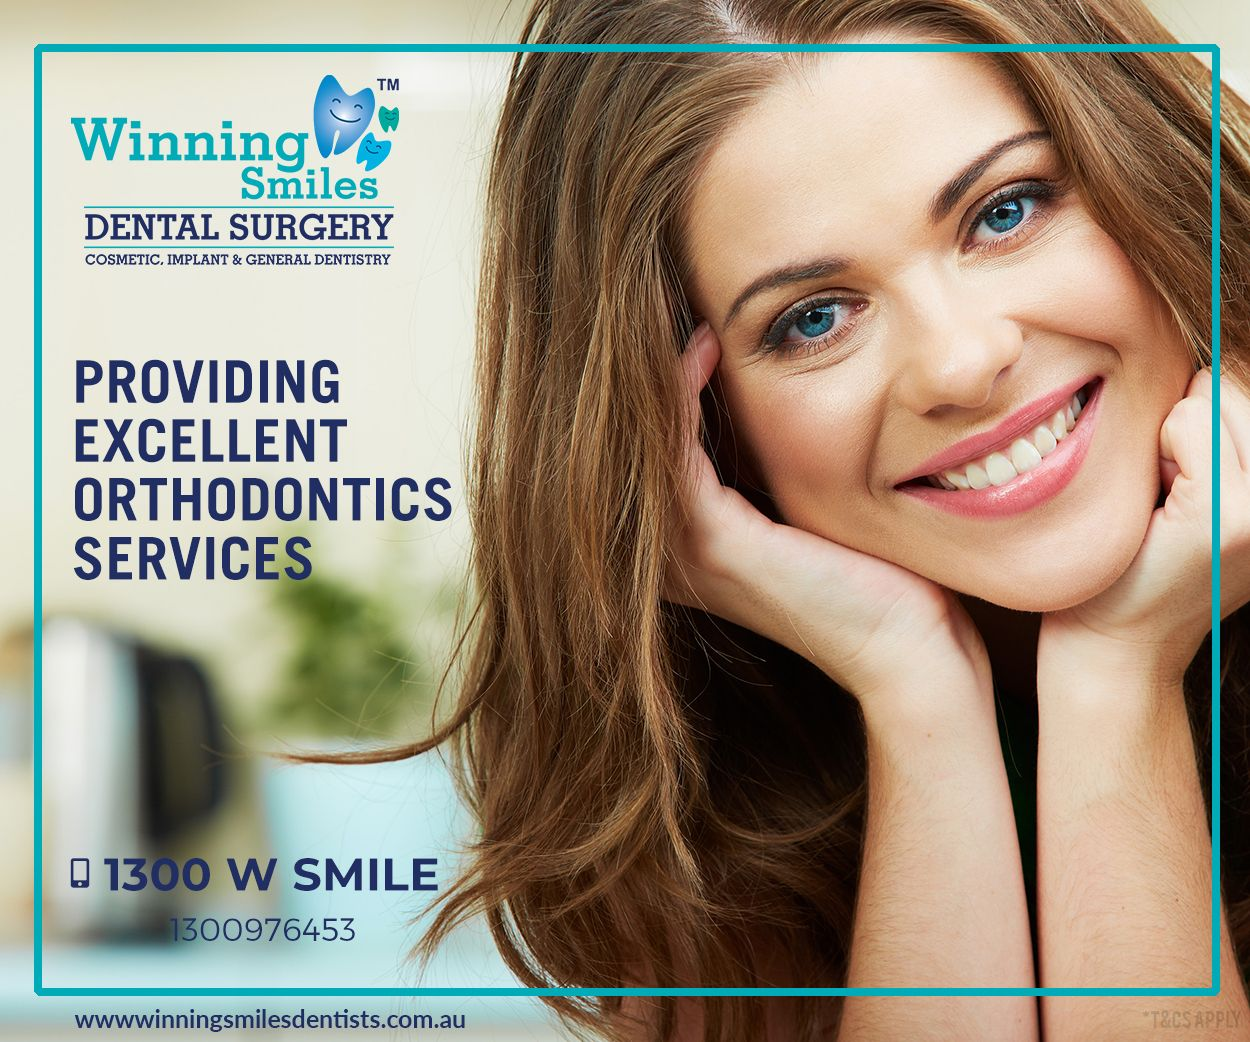 We are happy to provide excellent orthodontics services